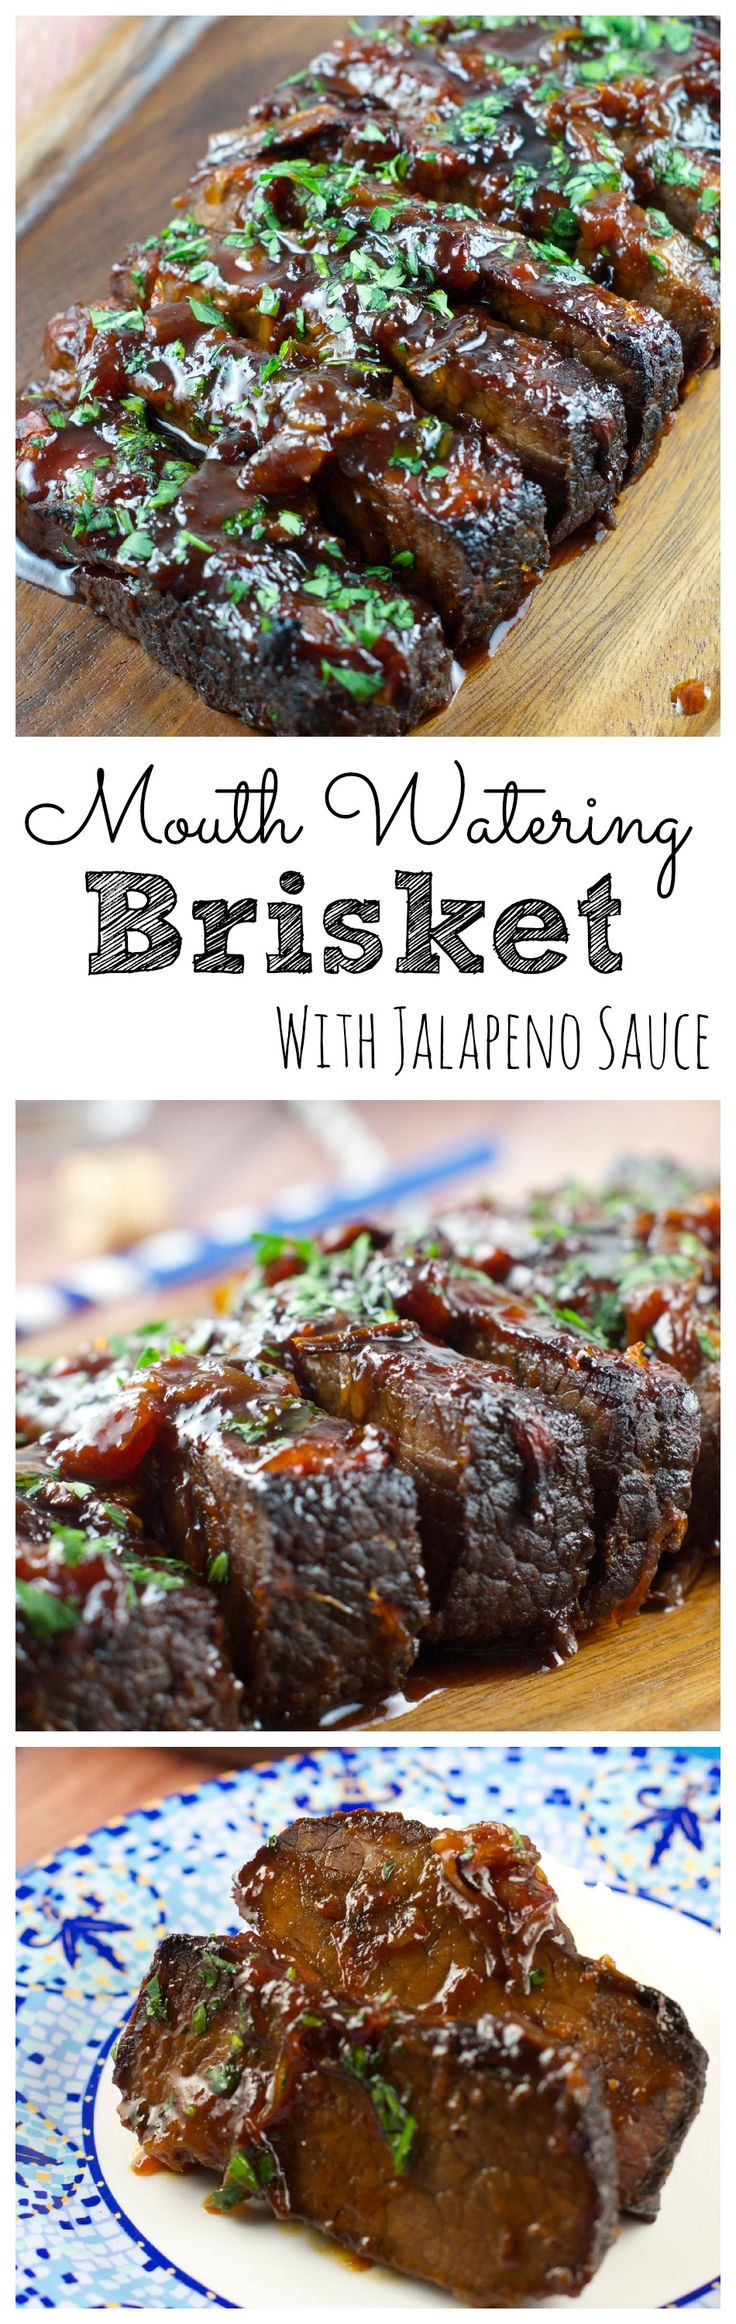 Jalapeño Brisket Recipe - This melt in your mouth Brisket is sweet with just a hint of heat. The beef just melts in your mouth #SeasonedGreetings #CollectiveBias #Ad